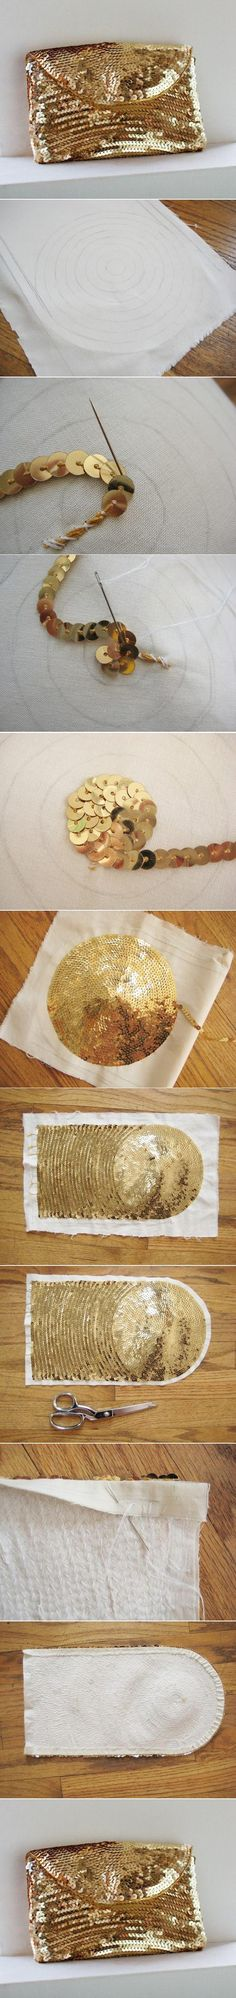 #DIY #sequin #clutch #handmade easy diy how to make a great glittery shiny hand bag purse :)